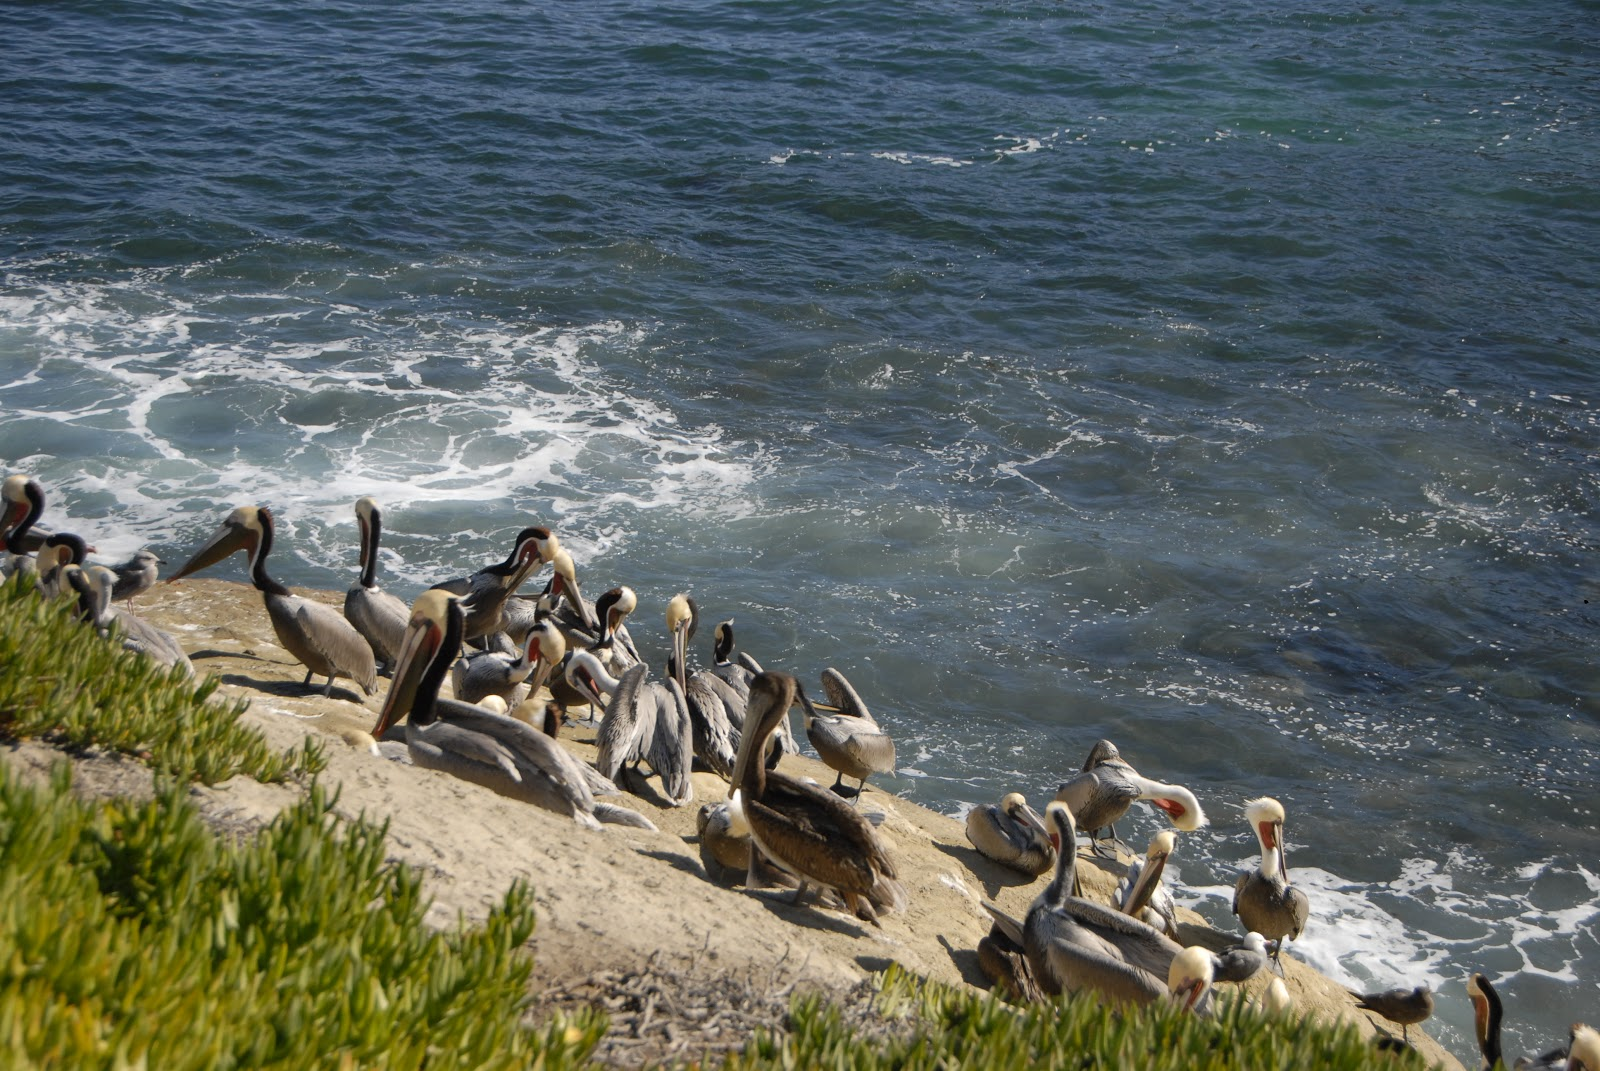 many pelicans along the coastline